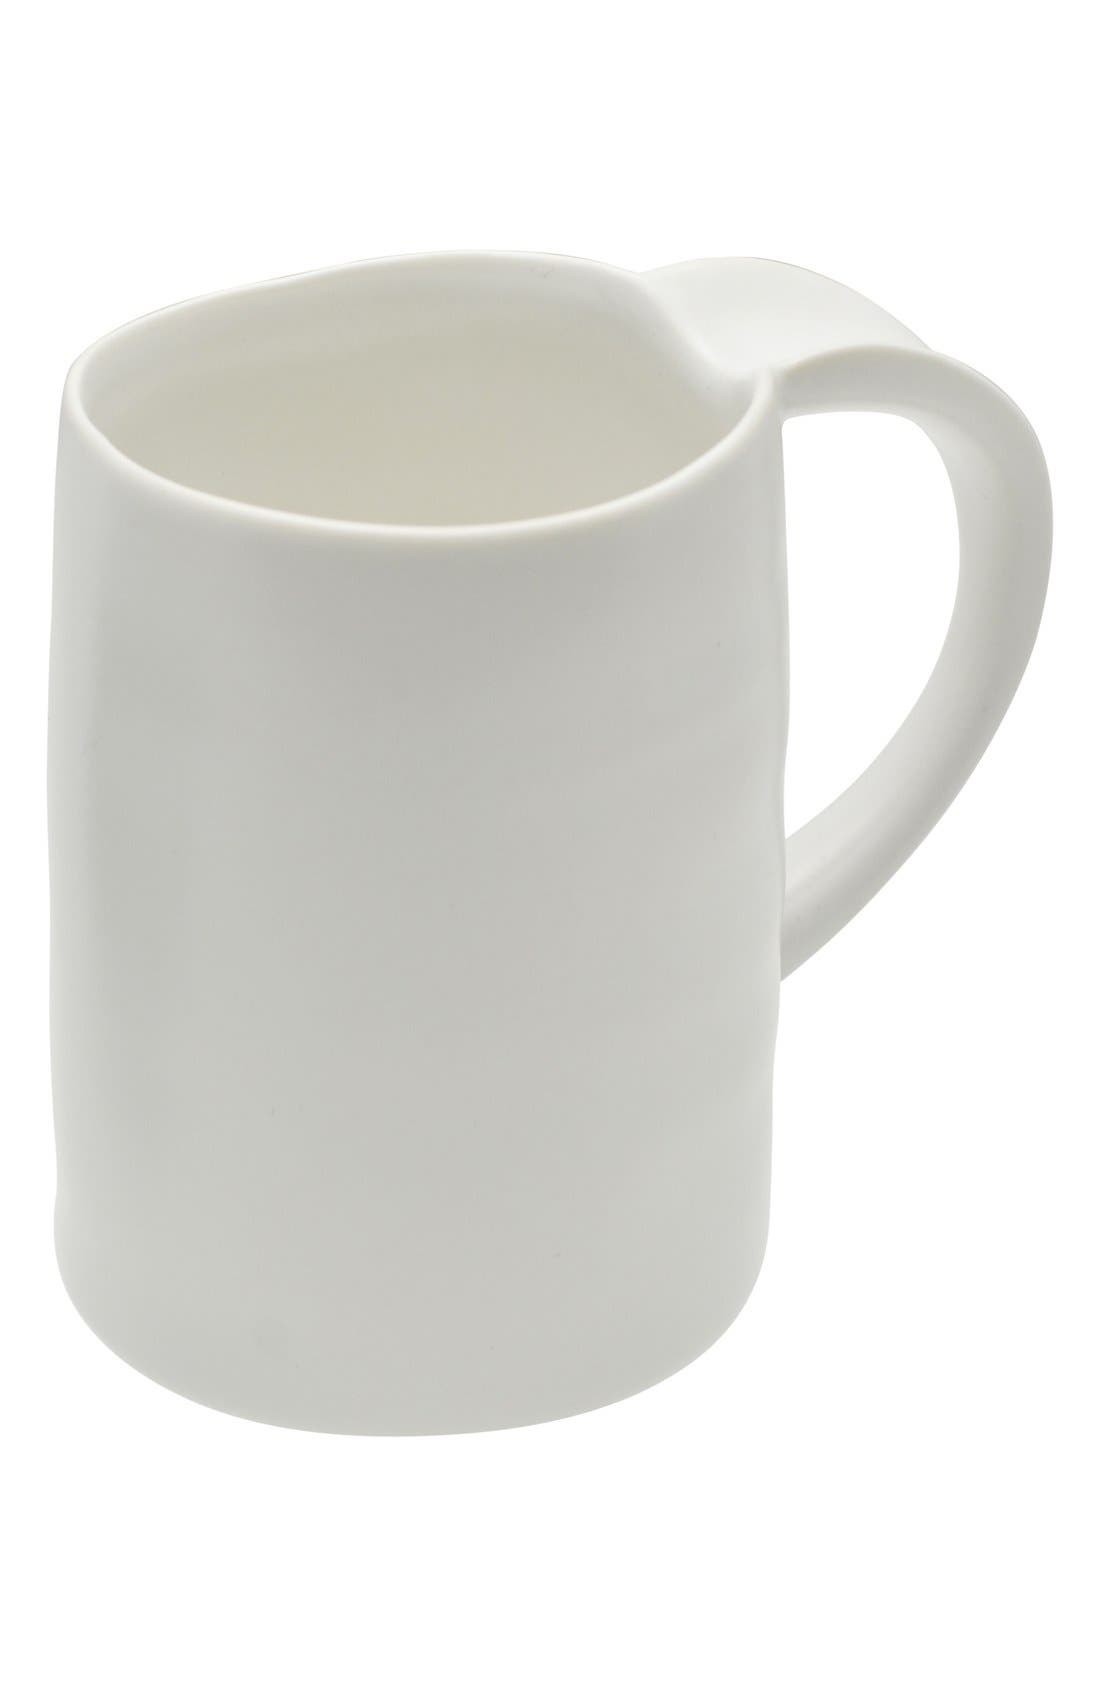 Main Image - 10 Strawberry Street 'Ripple' Porcelain Mugs (Set of 6)